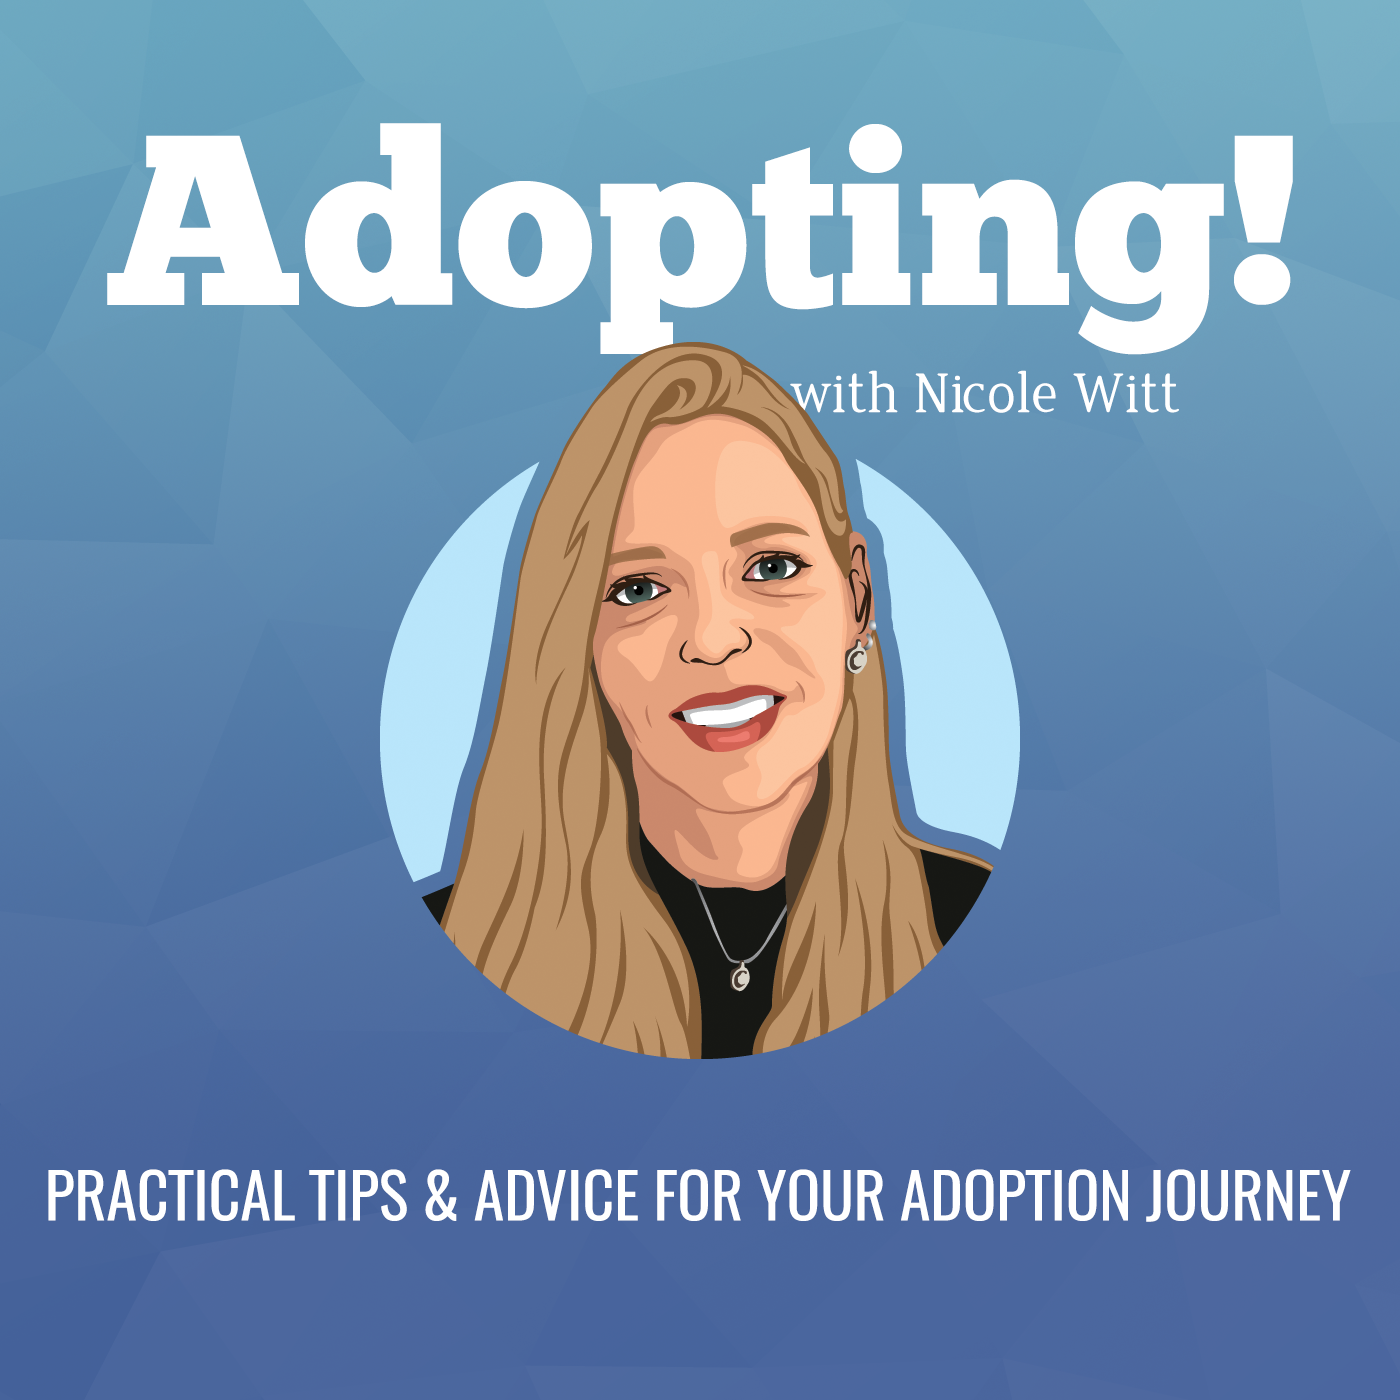 https://s3-us-west-2.amazonaws.com/cdn.adopting.com/site/adopting-the-podcast-cover-art.png